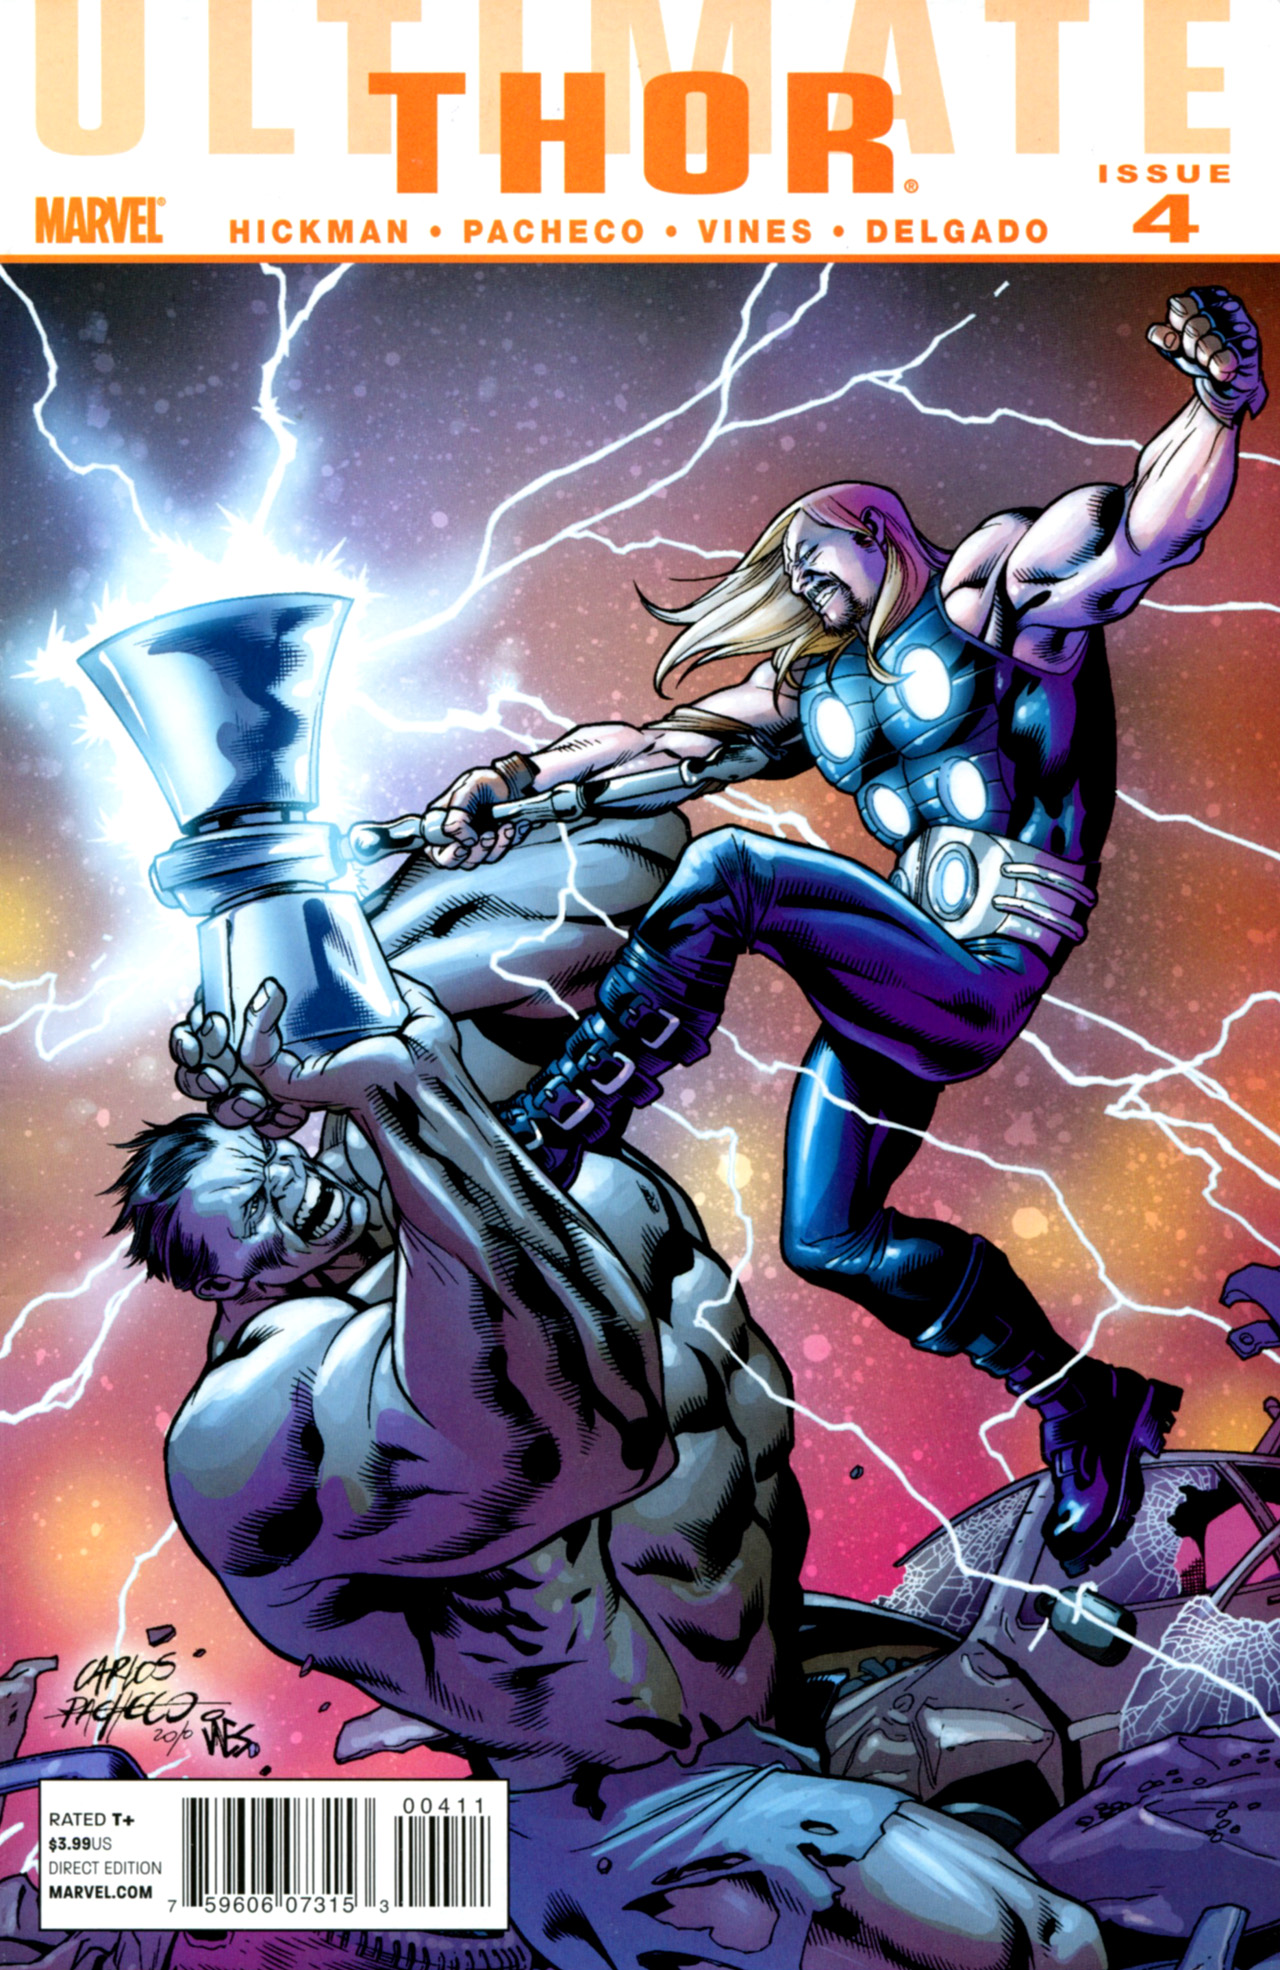 Read online Ultimate Thor comic -  Issue #4 - 1